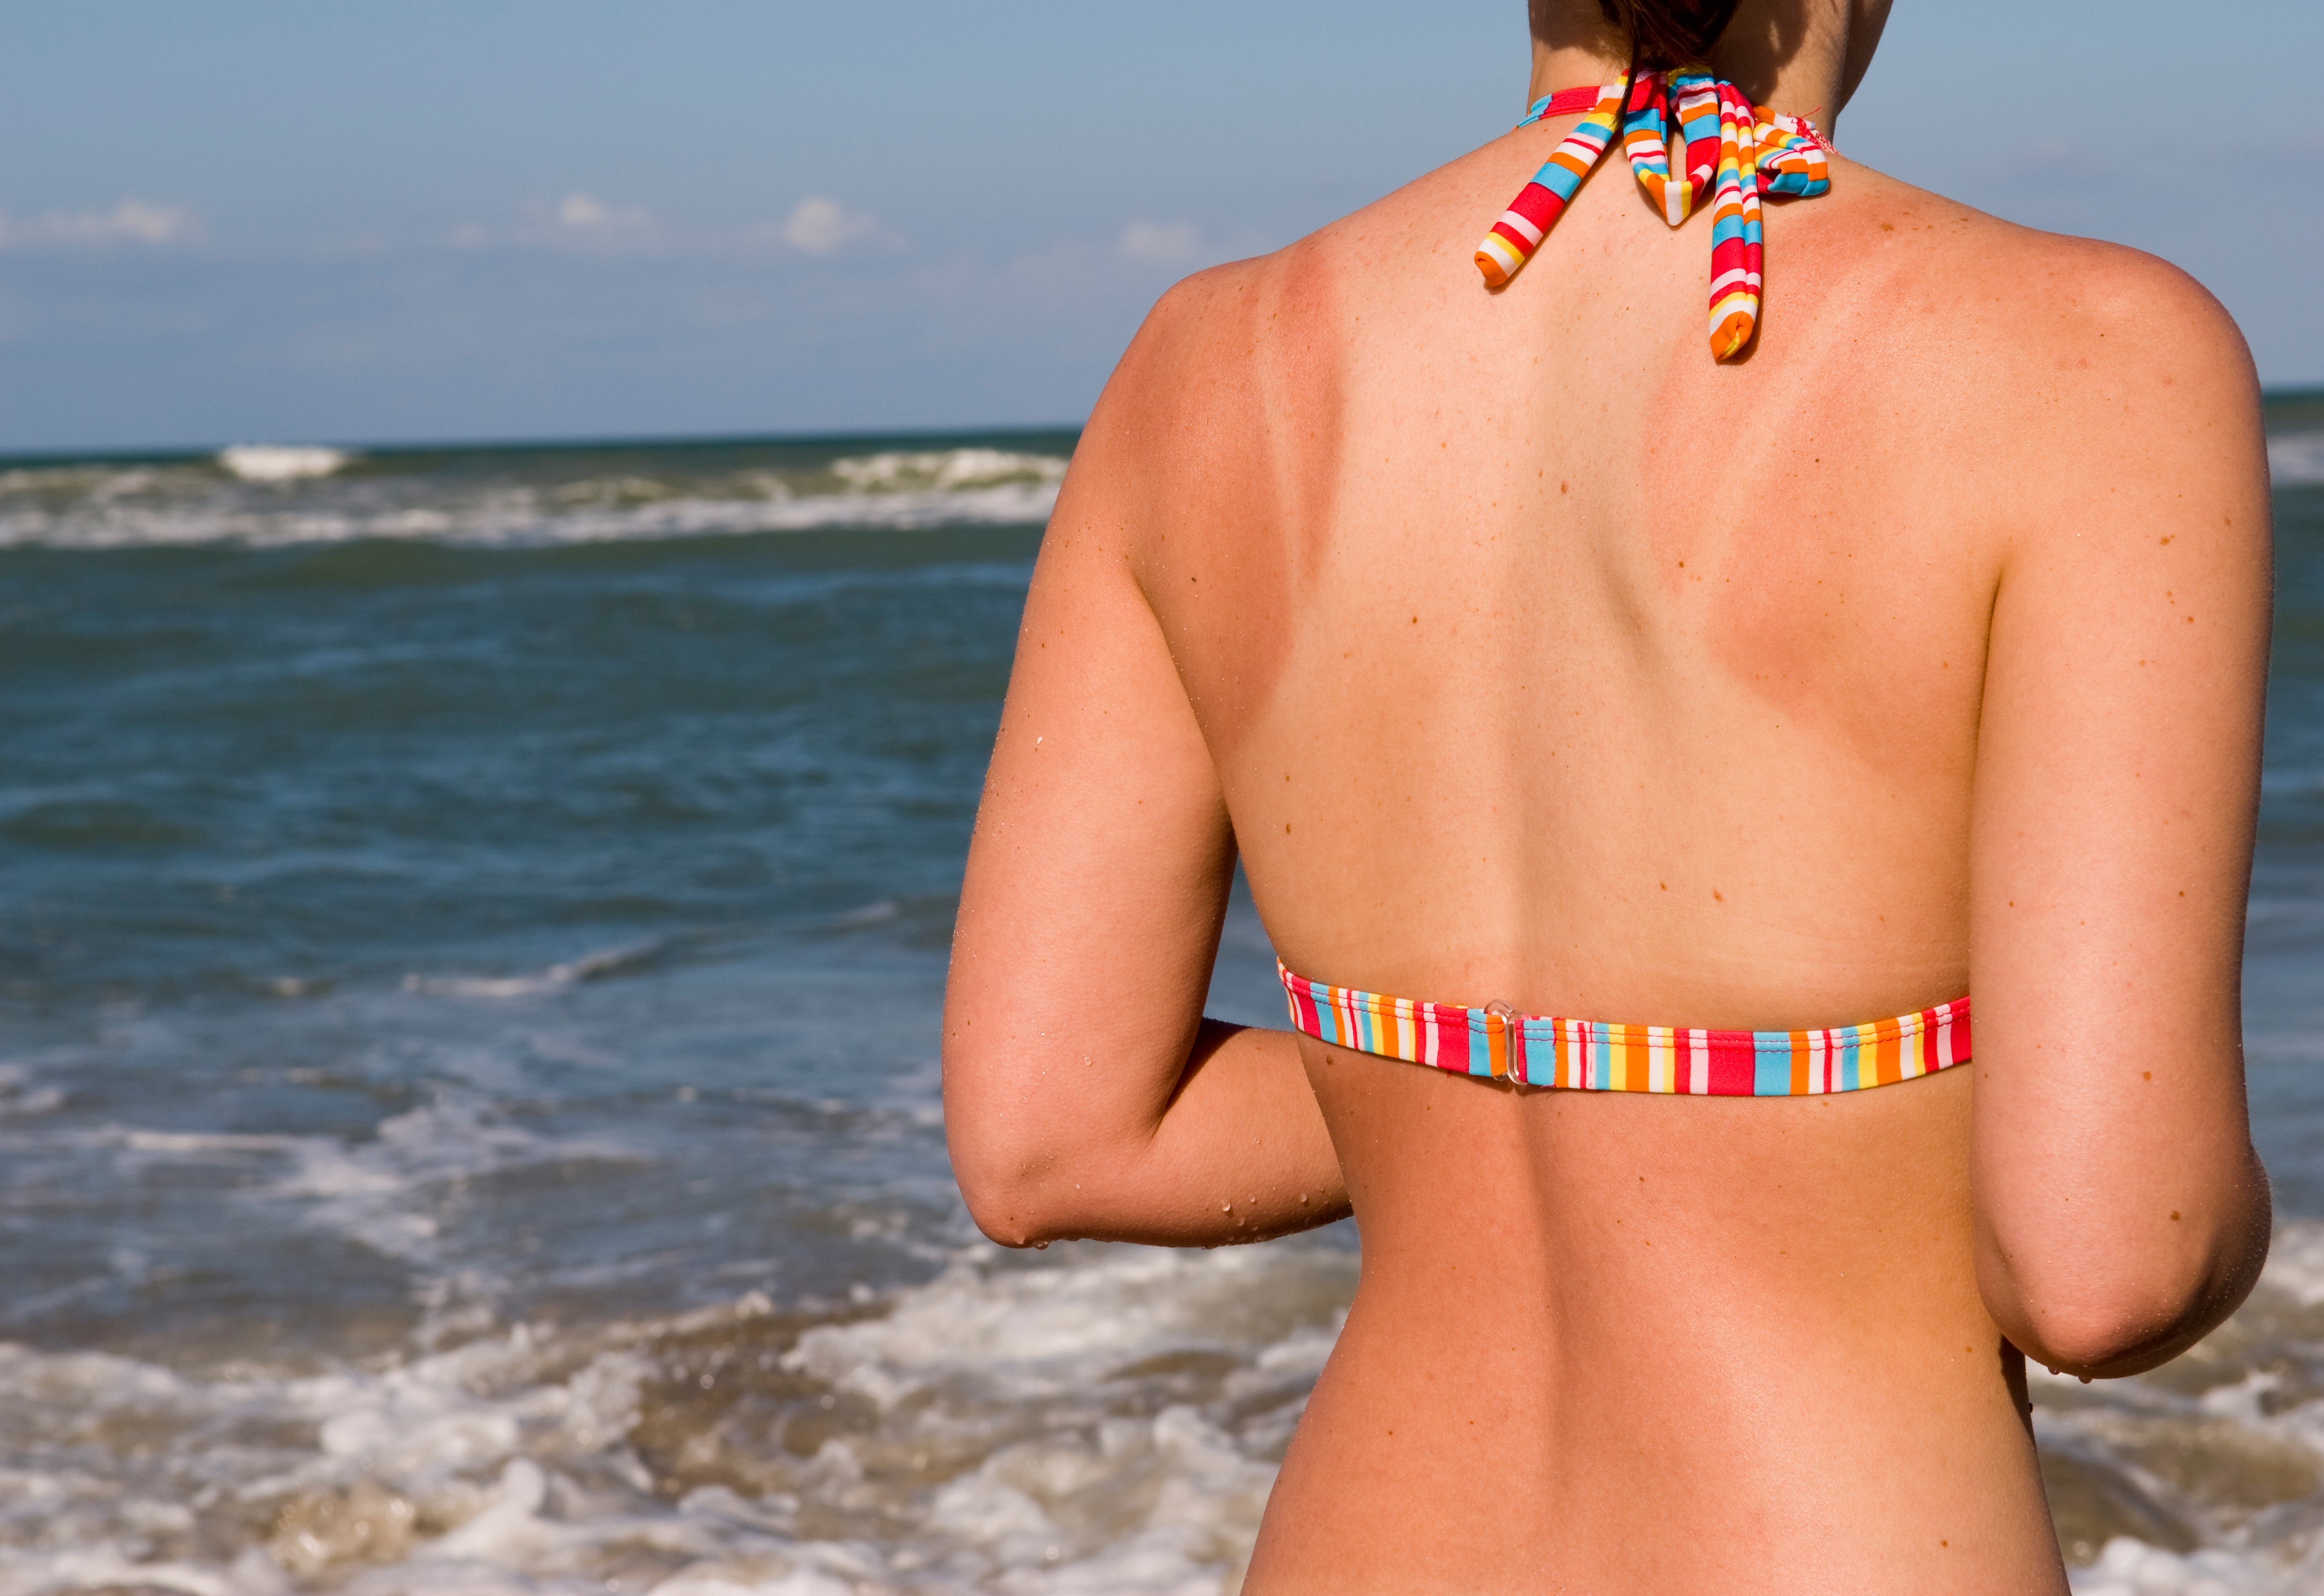 Sunburn Treatment: What Really Causes a Sunburn and How to Treat It Fast